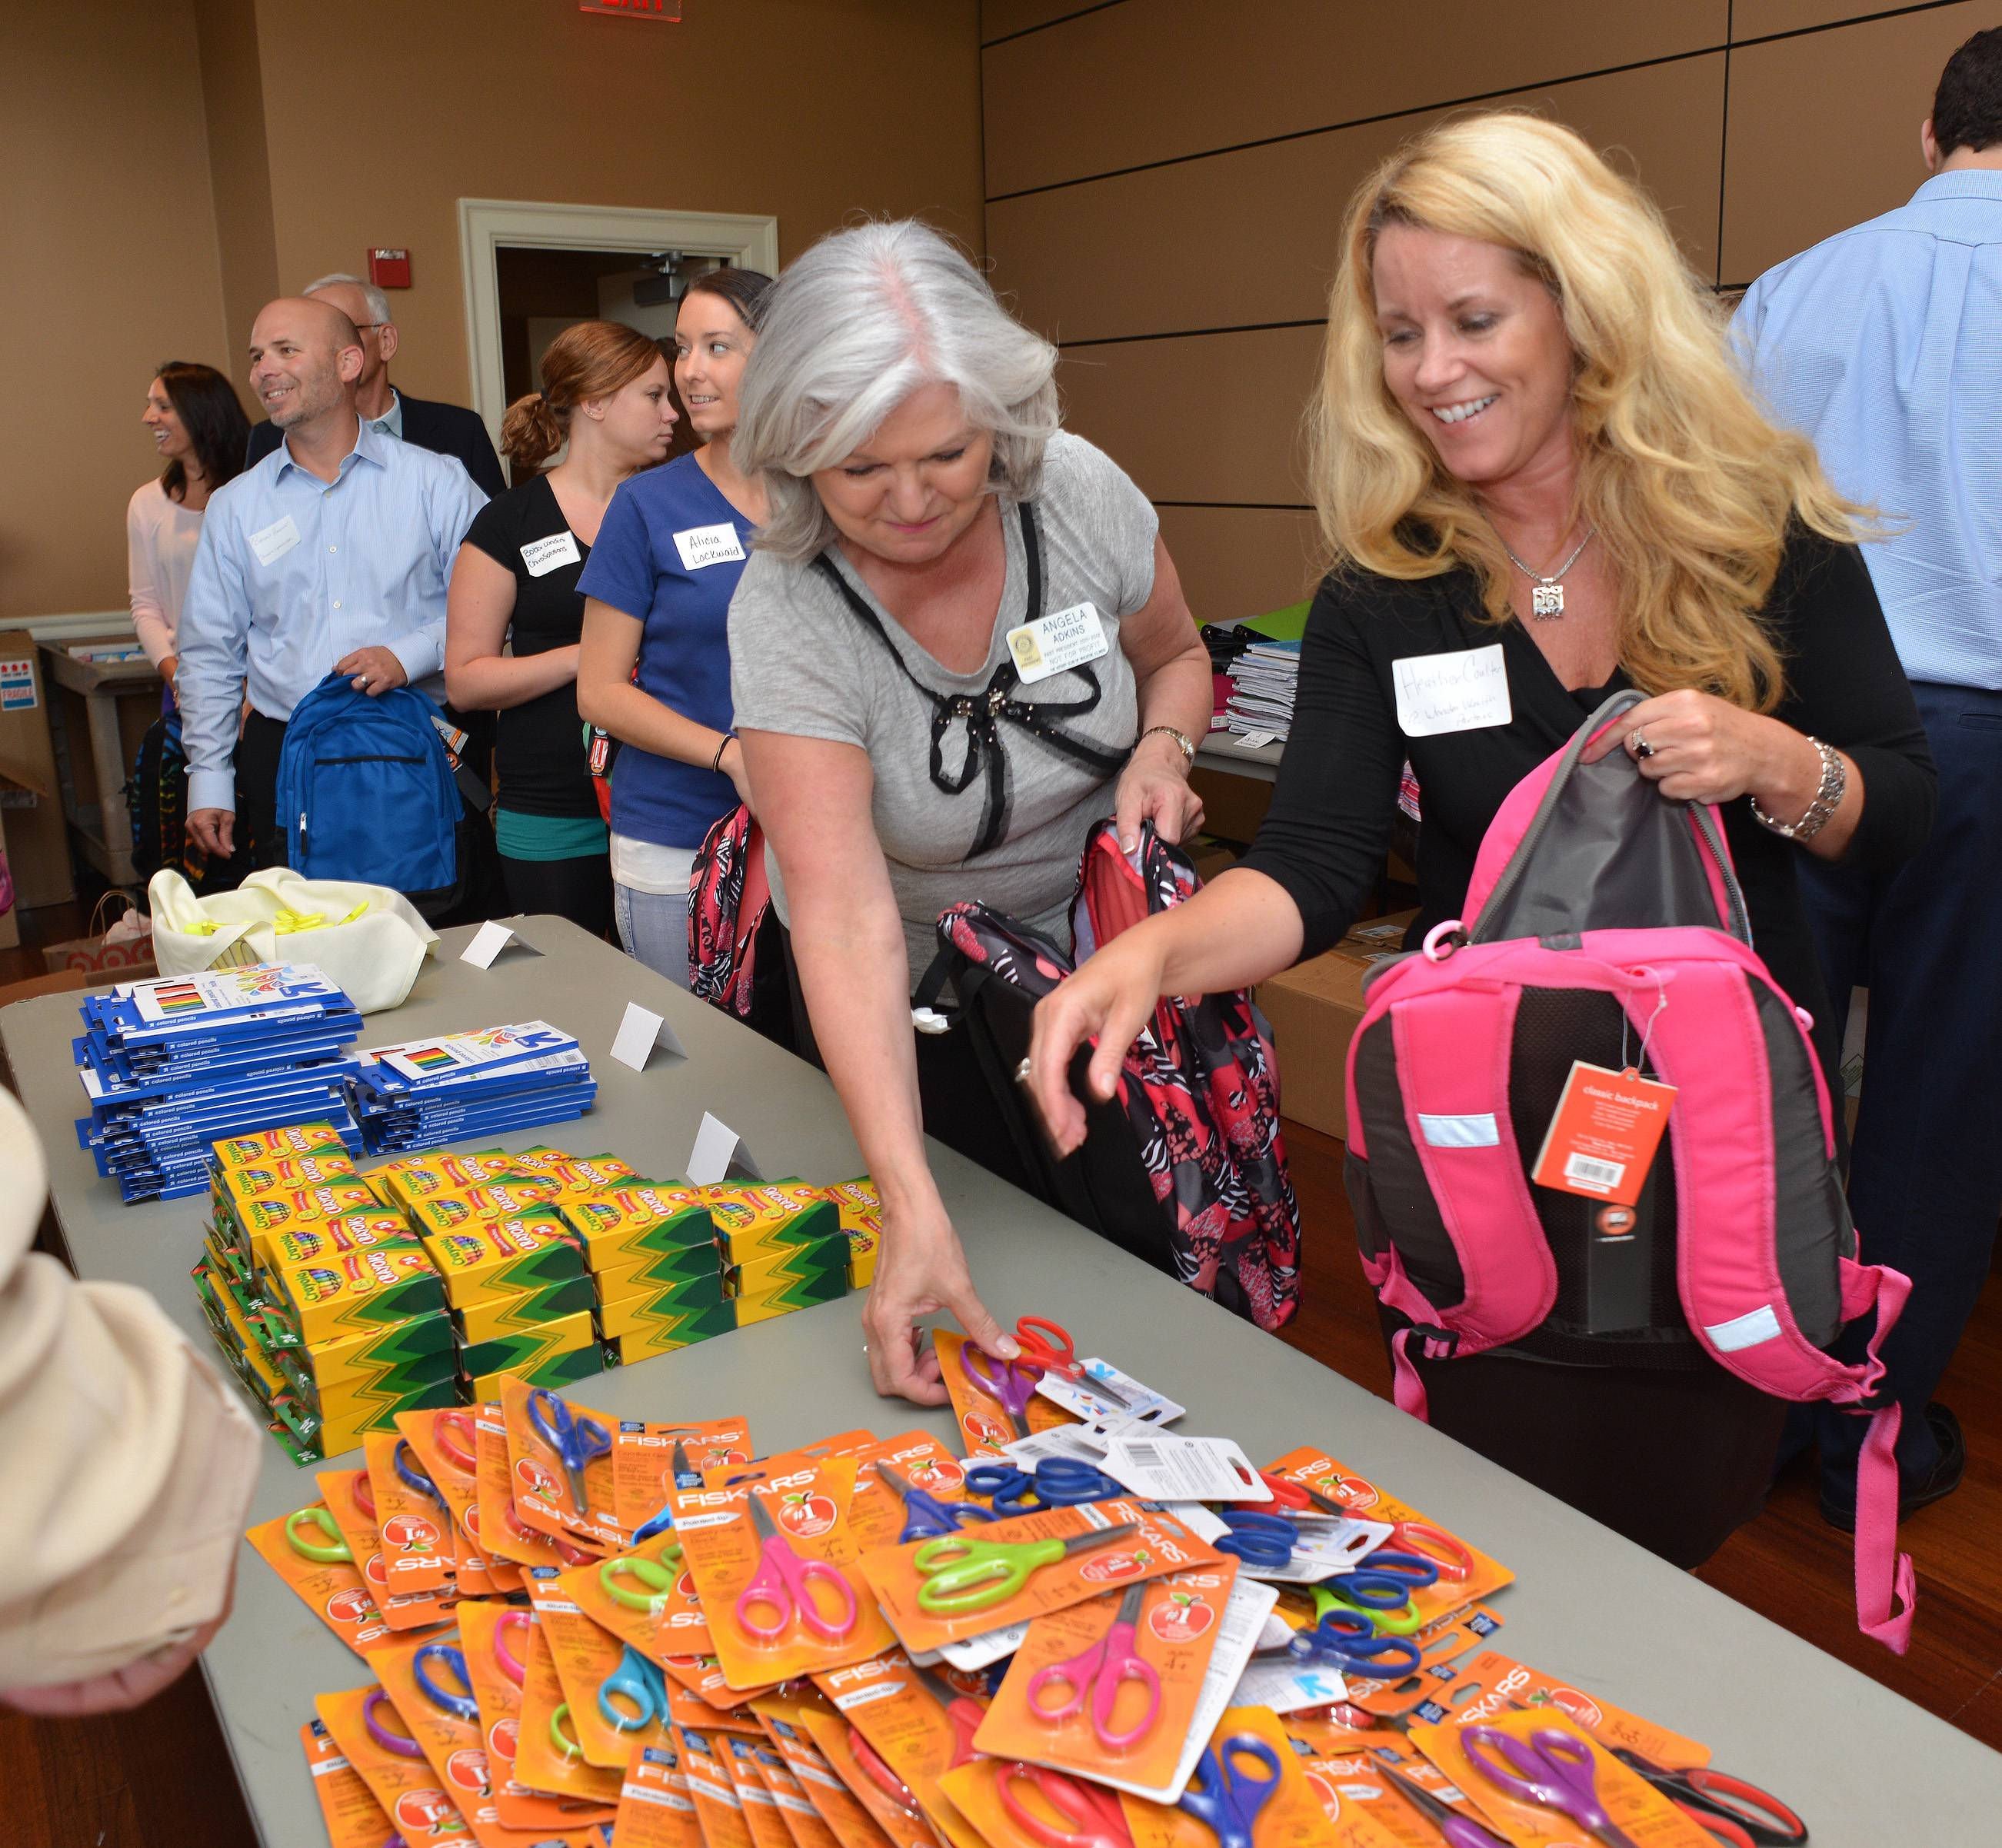 Wheaton Rotary Club and Wheaton Chamber of Commerce members filled more than 150 donated backpacks for kids in need Wednesday following a luncheon at Arrowhead Country Club in Wheaton. Angela Adkins, second right, and Heather Coulter, right, grab donated supplies for their backpacks.